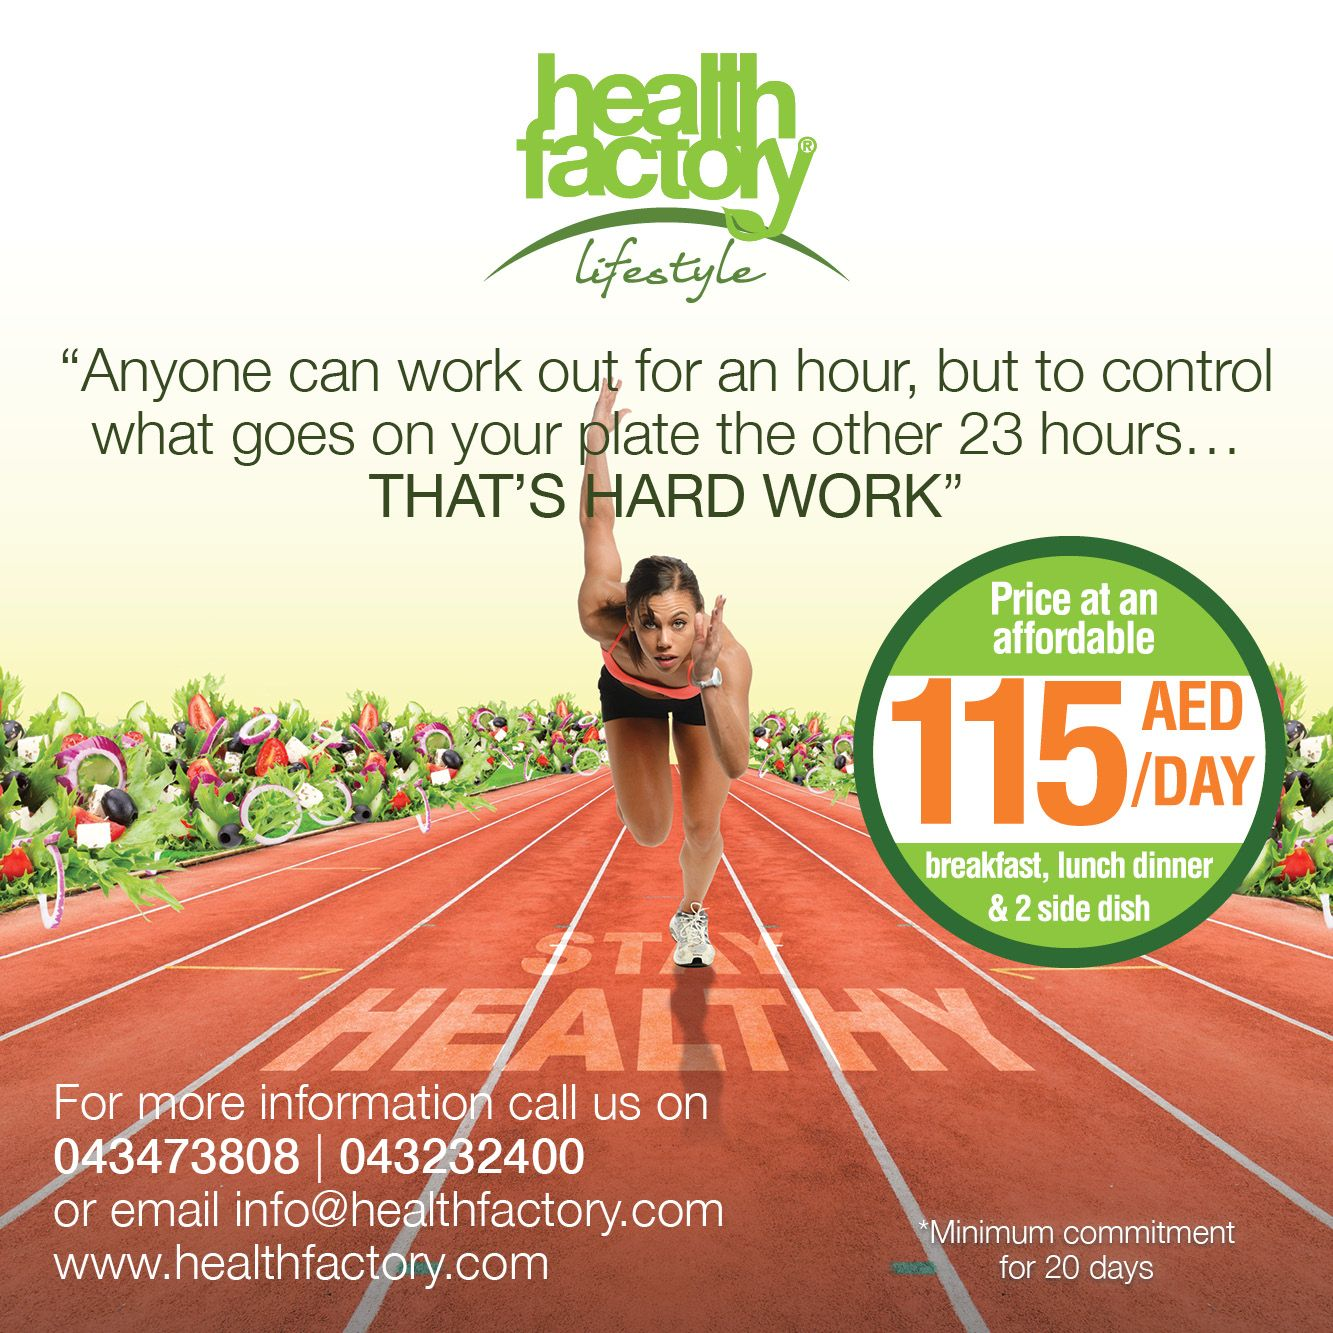 Introducing your ultimate #fitness partner! The 'Health Factory Lifestyle' plan, which will assist you in making all the #healthy #food choices your body requires. Packed with the right amount of #vitamins, minerals and pure goodness to ensure a healthy and balanced life.  Price at an affordable AED 115/day for #Breakfast, #Lunch, #Dinner and 2 x Side-Dish.   Sign up with 'Health Factory Lifestyle' and SIT BACK | ENJOY | LIVE HEALTHY!  For  more information: Web: http://goo.gl/h1NZNm